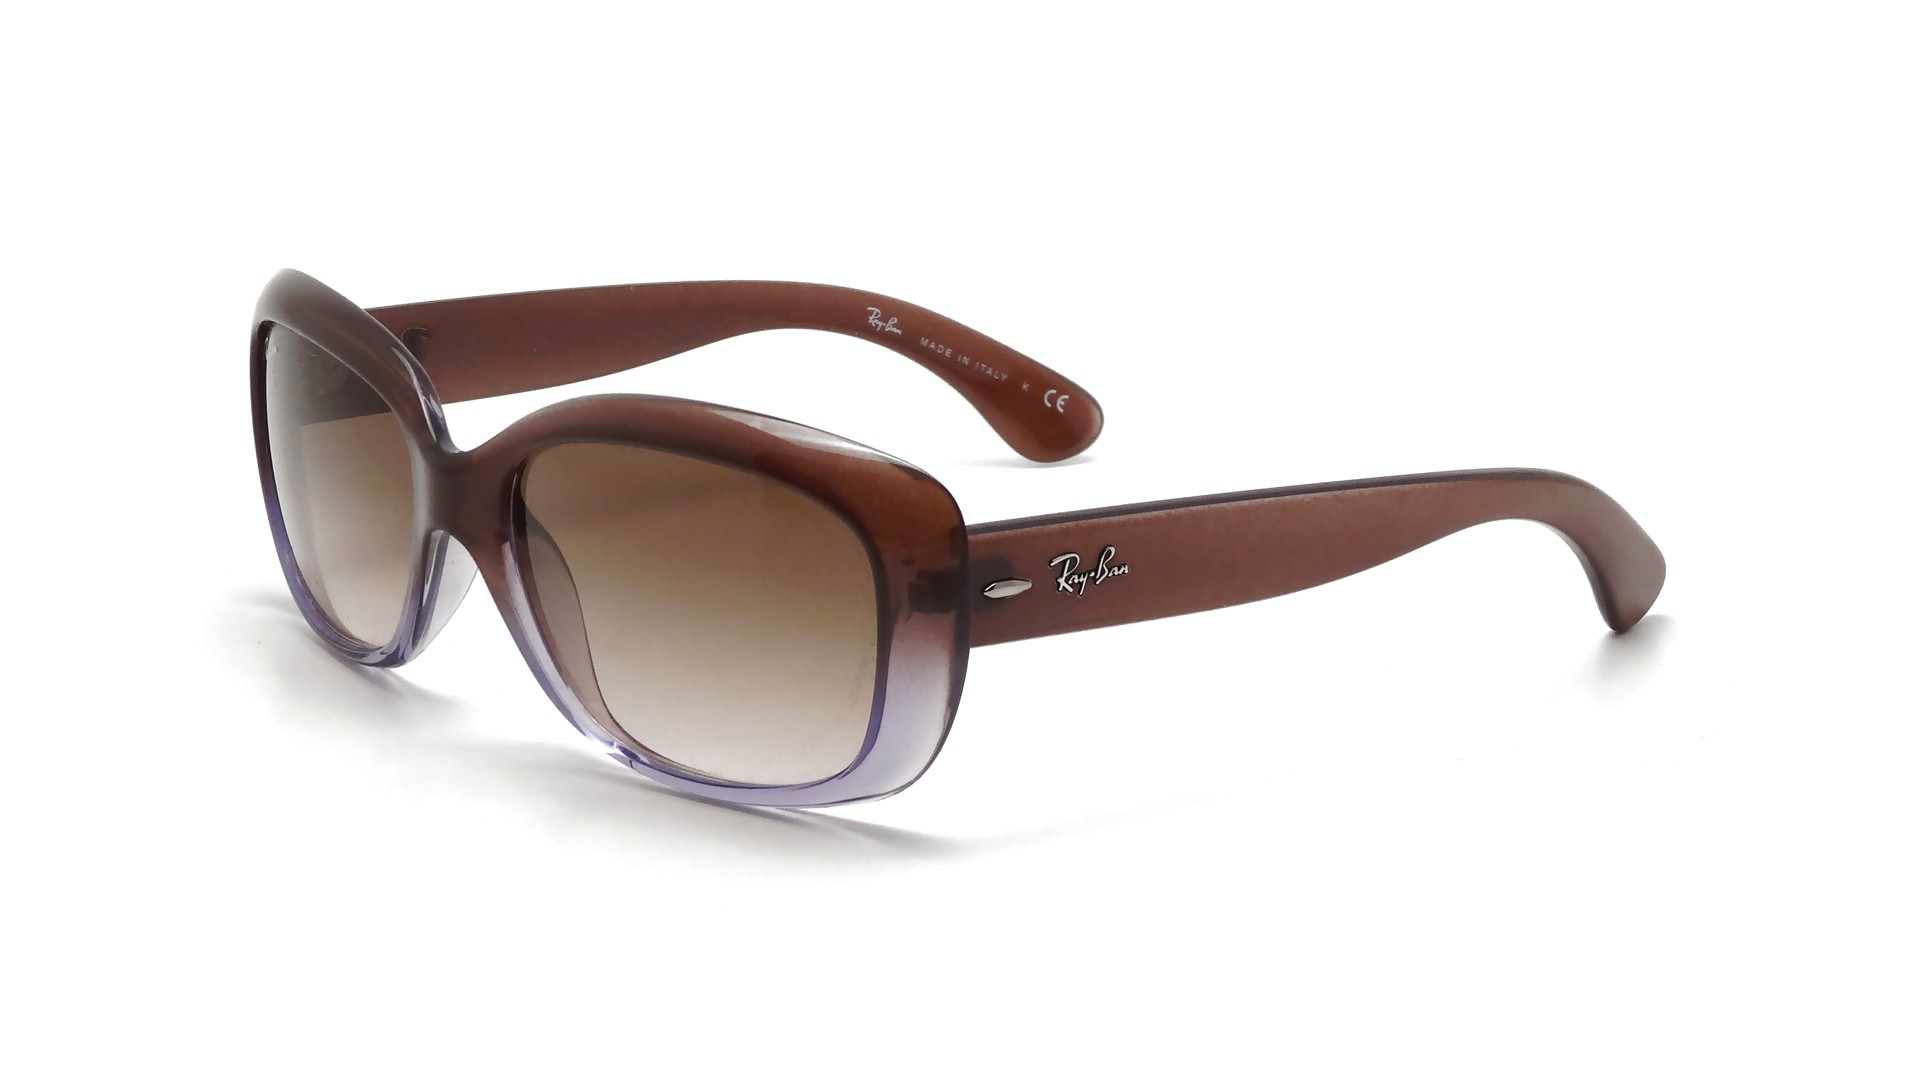 ray ban jackie ohh sunglasses  Ban Jackie Ohh Brown RB4101 860/51 58-13